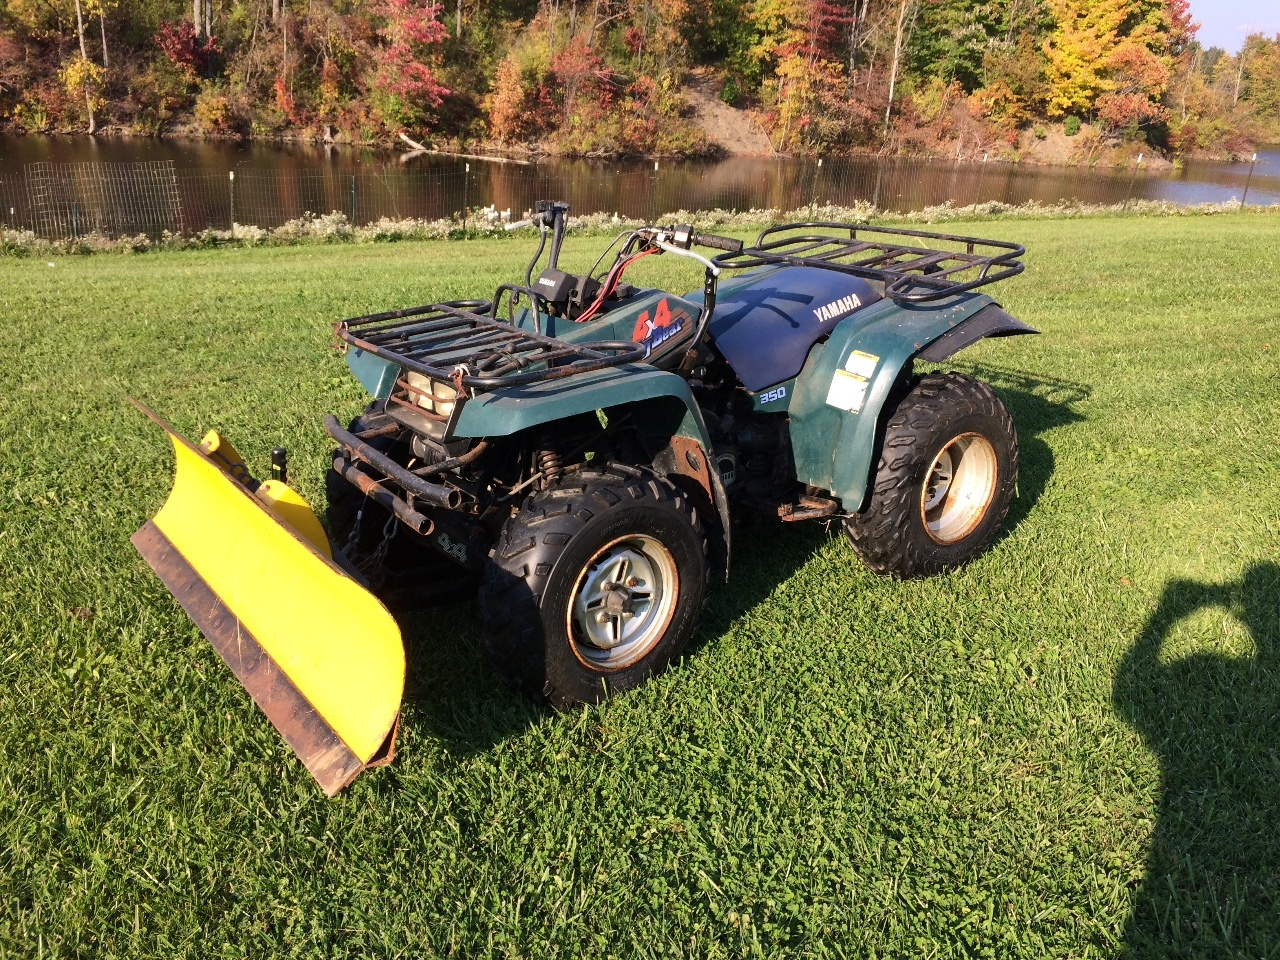 1996 yamaha big bear 350 pictures to pin on pinterest